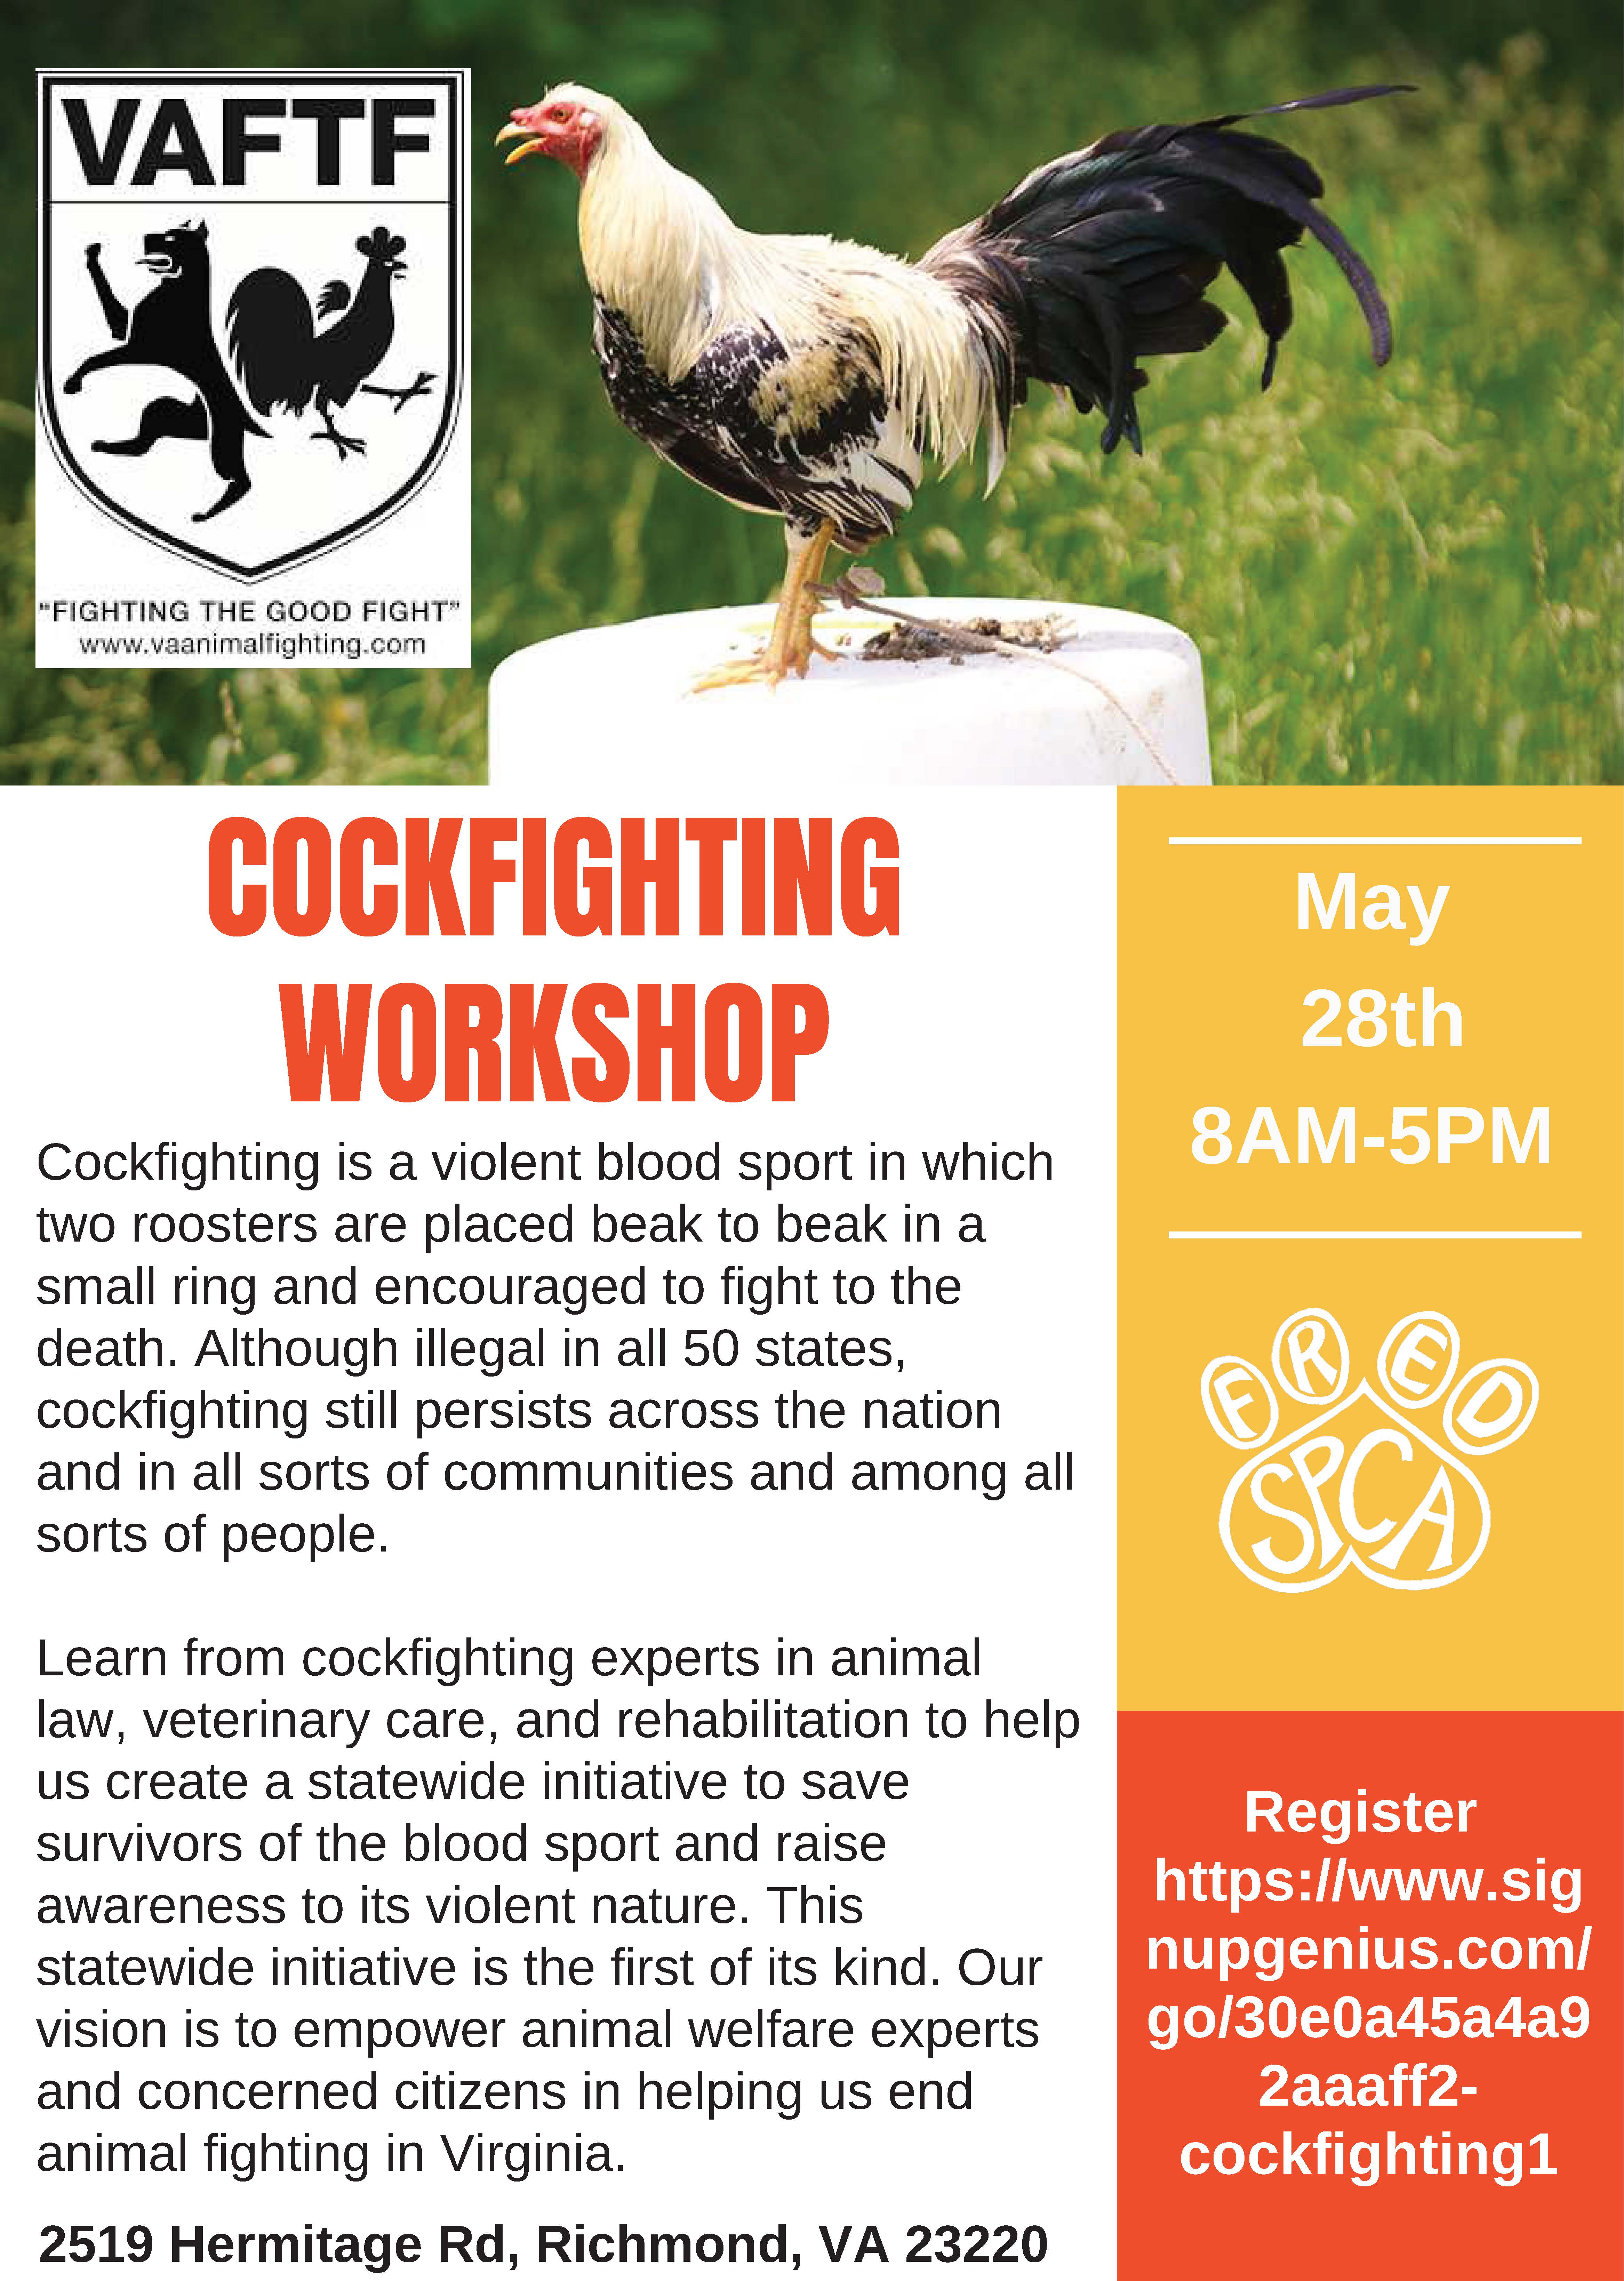 Cockfighting Workshop image preview